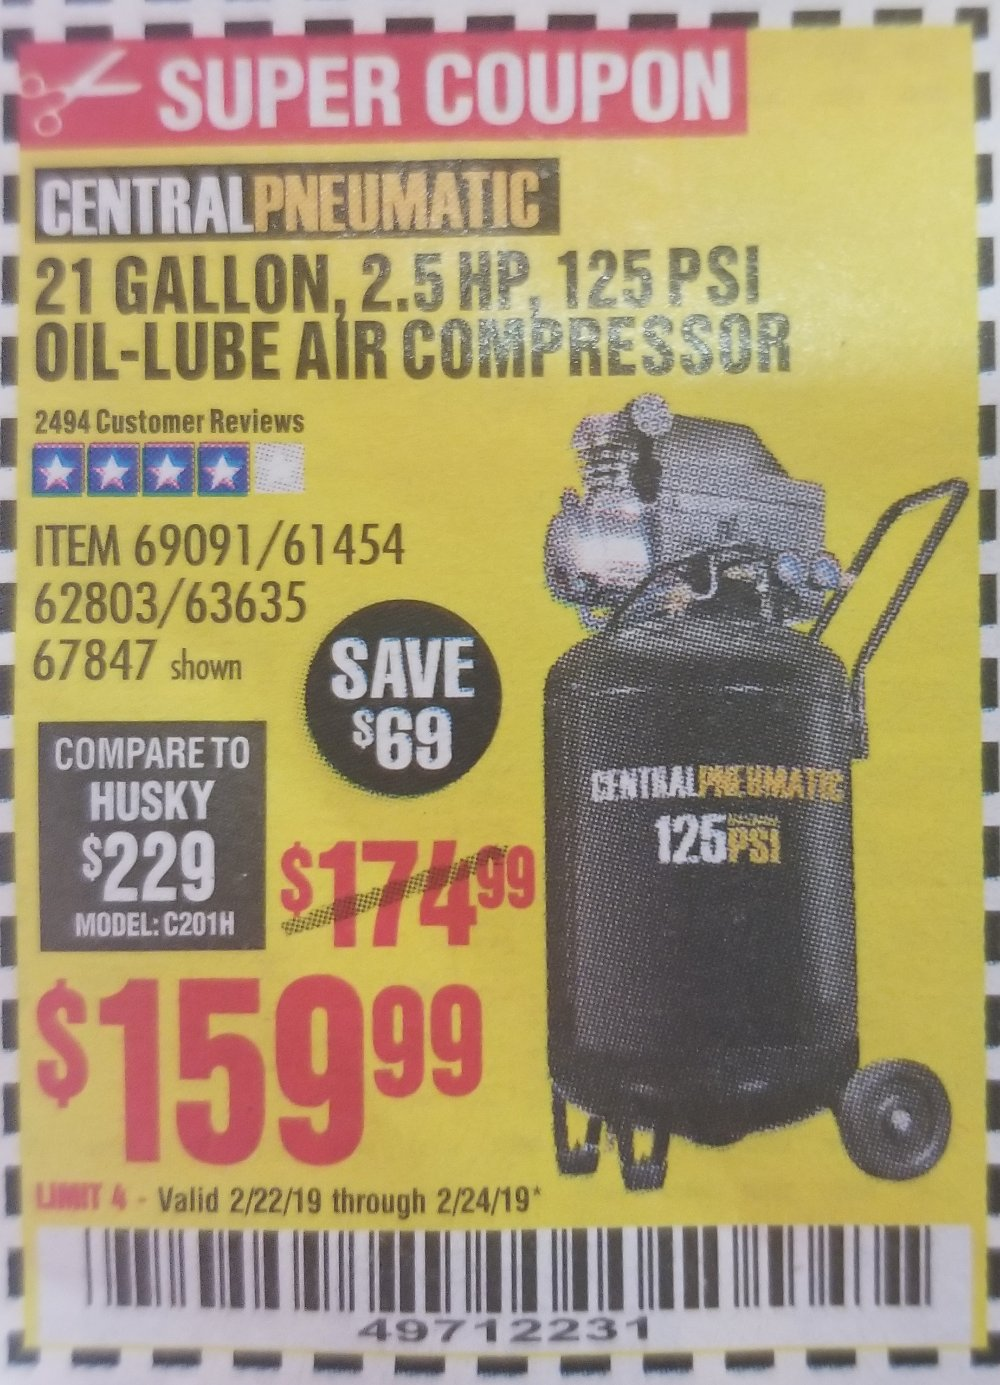 Harbor Freight Coupon, HF Coupons - 21 Gallon Air Compressor